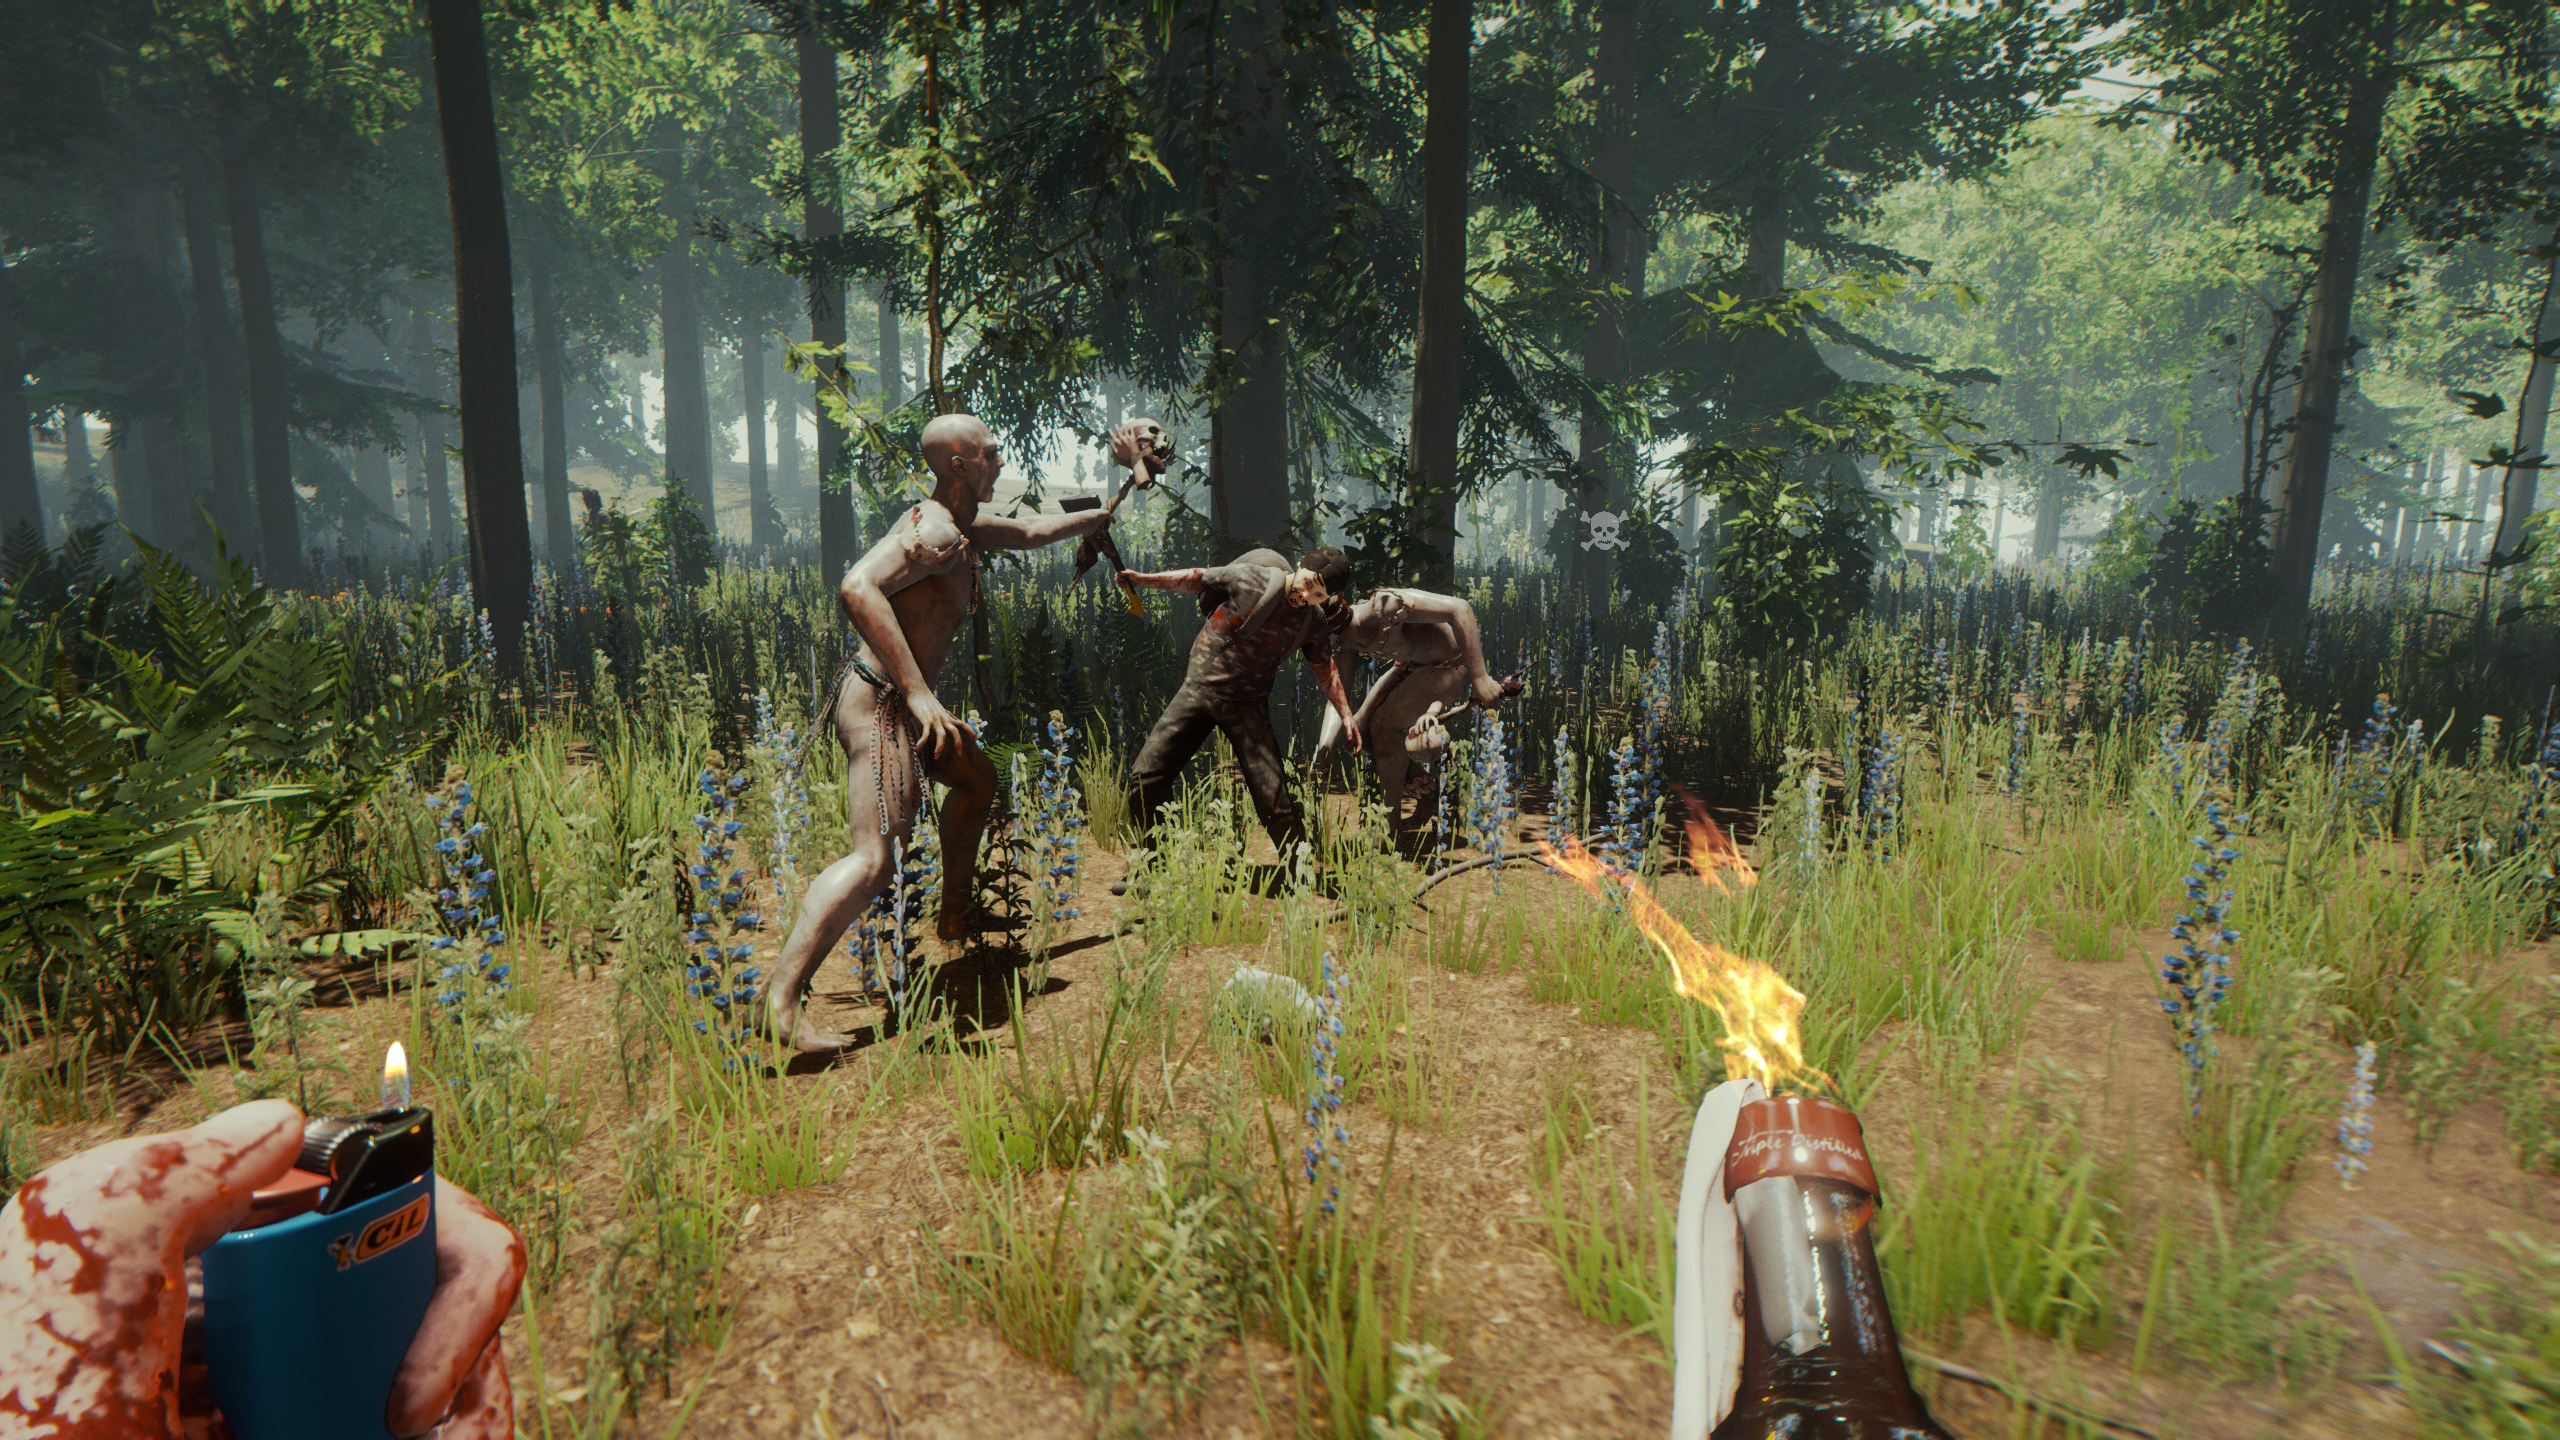 A screenshot from The Forest showing a forest scene full of zombies that are about to make the acquaintance of a molotov cocktail.